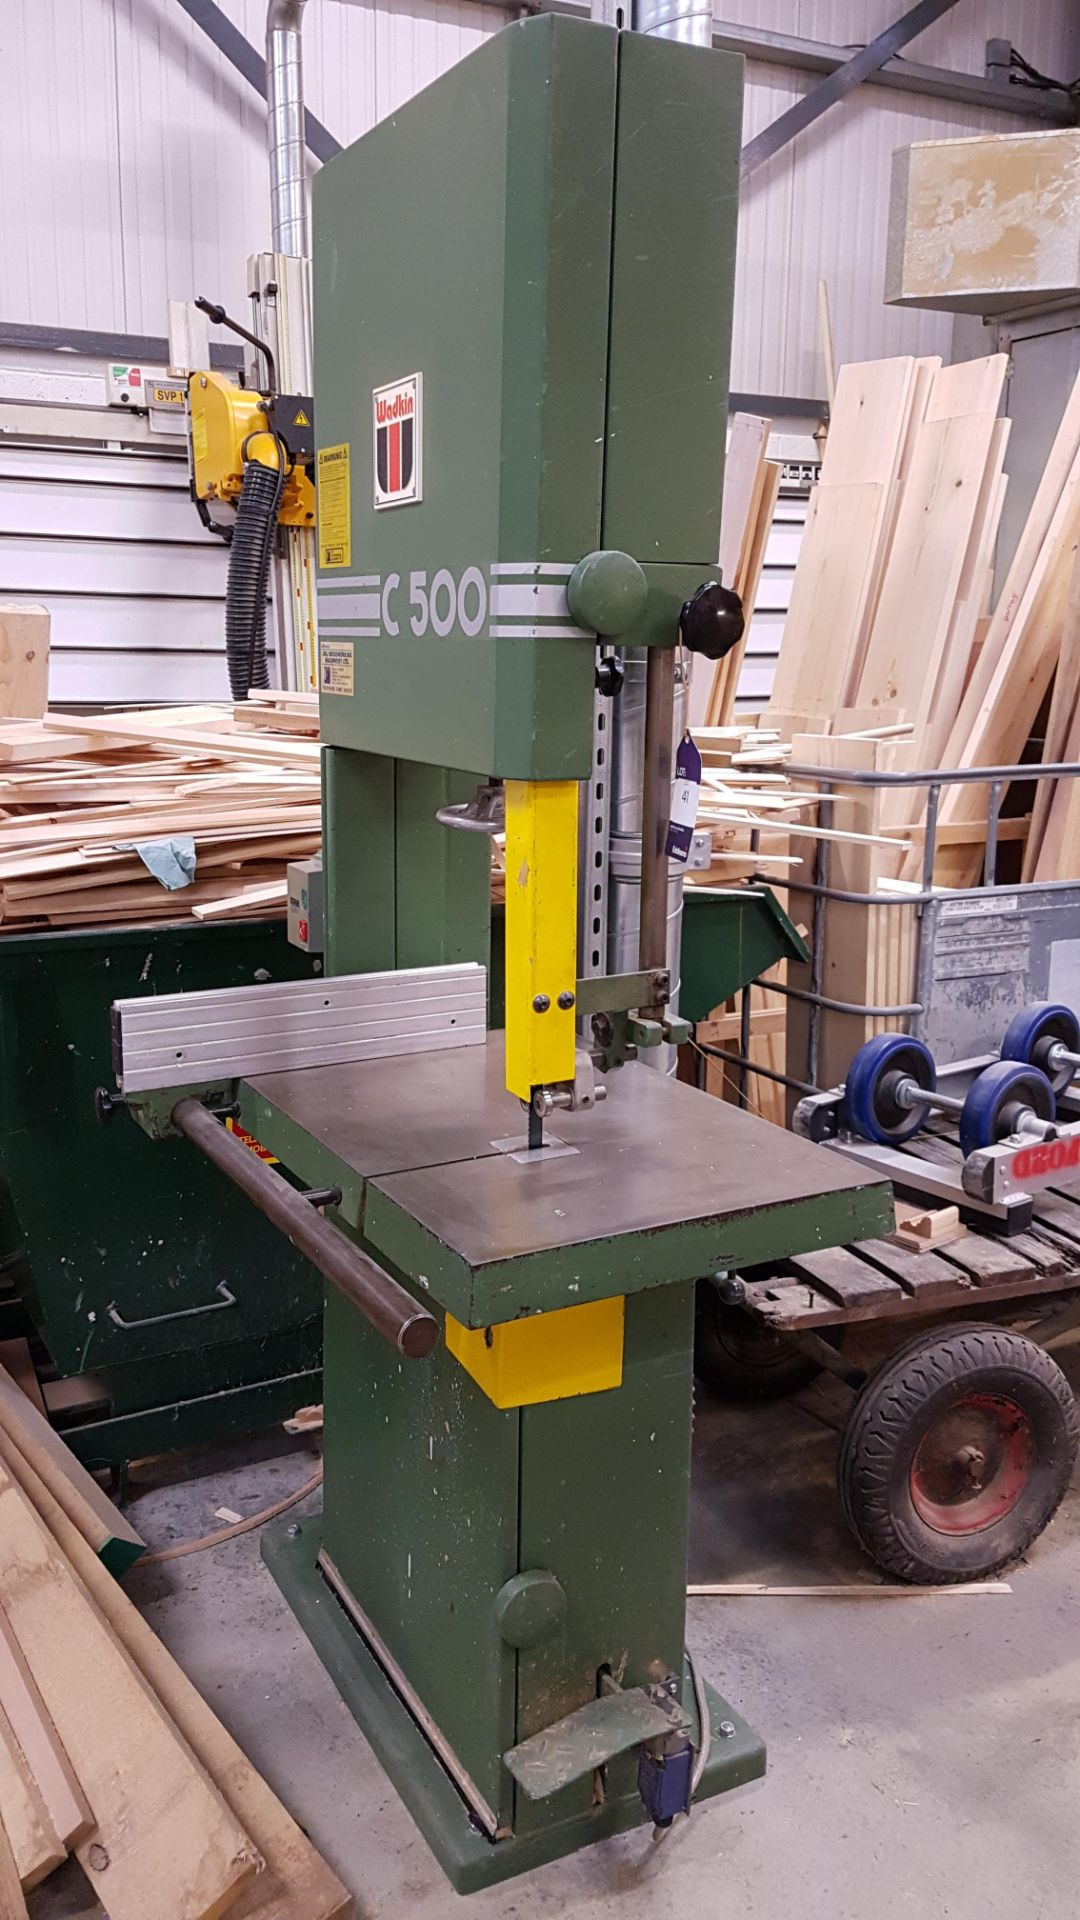 Lot 41 - * Wadkin C500 Vertical Bandsaw A Wadkin C500 Vertical Bandsaw Machine No:C5/89936. Please Note: